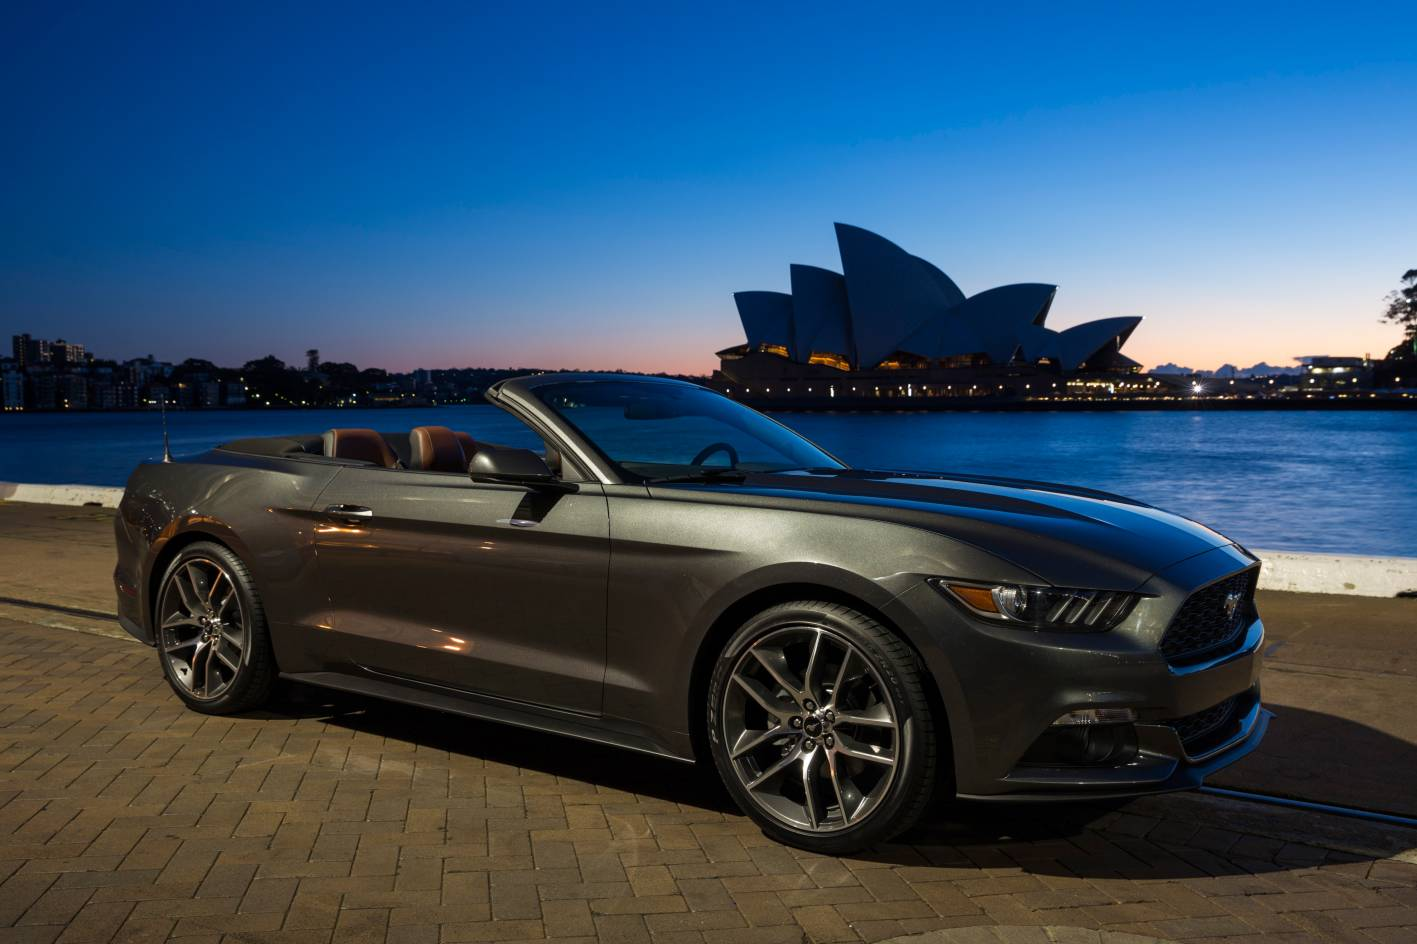 Ford Ecoboost Engine Ford Australia >> Ford Cars - News: 2015 Mustang priced from just $44,990